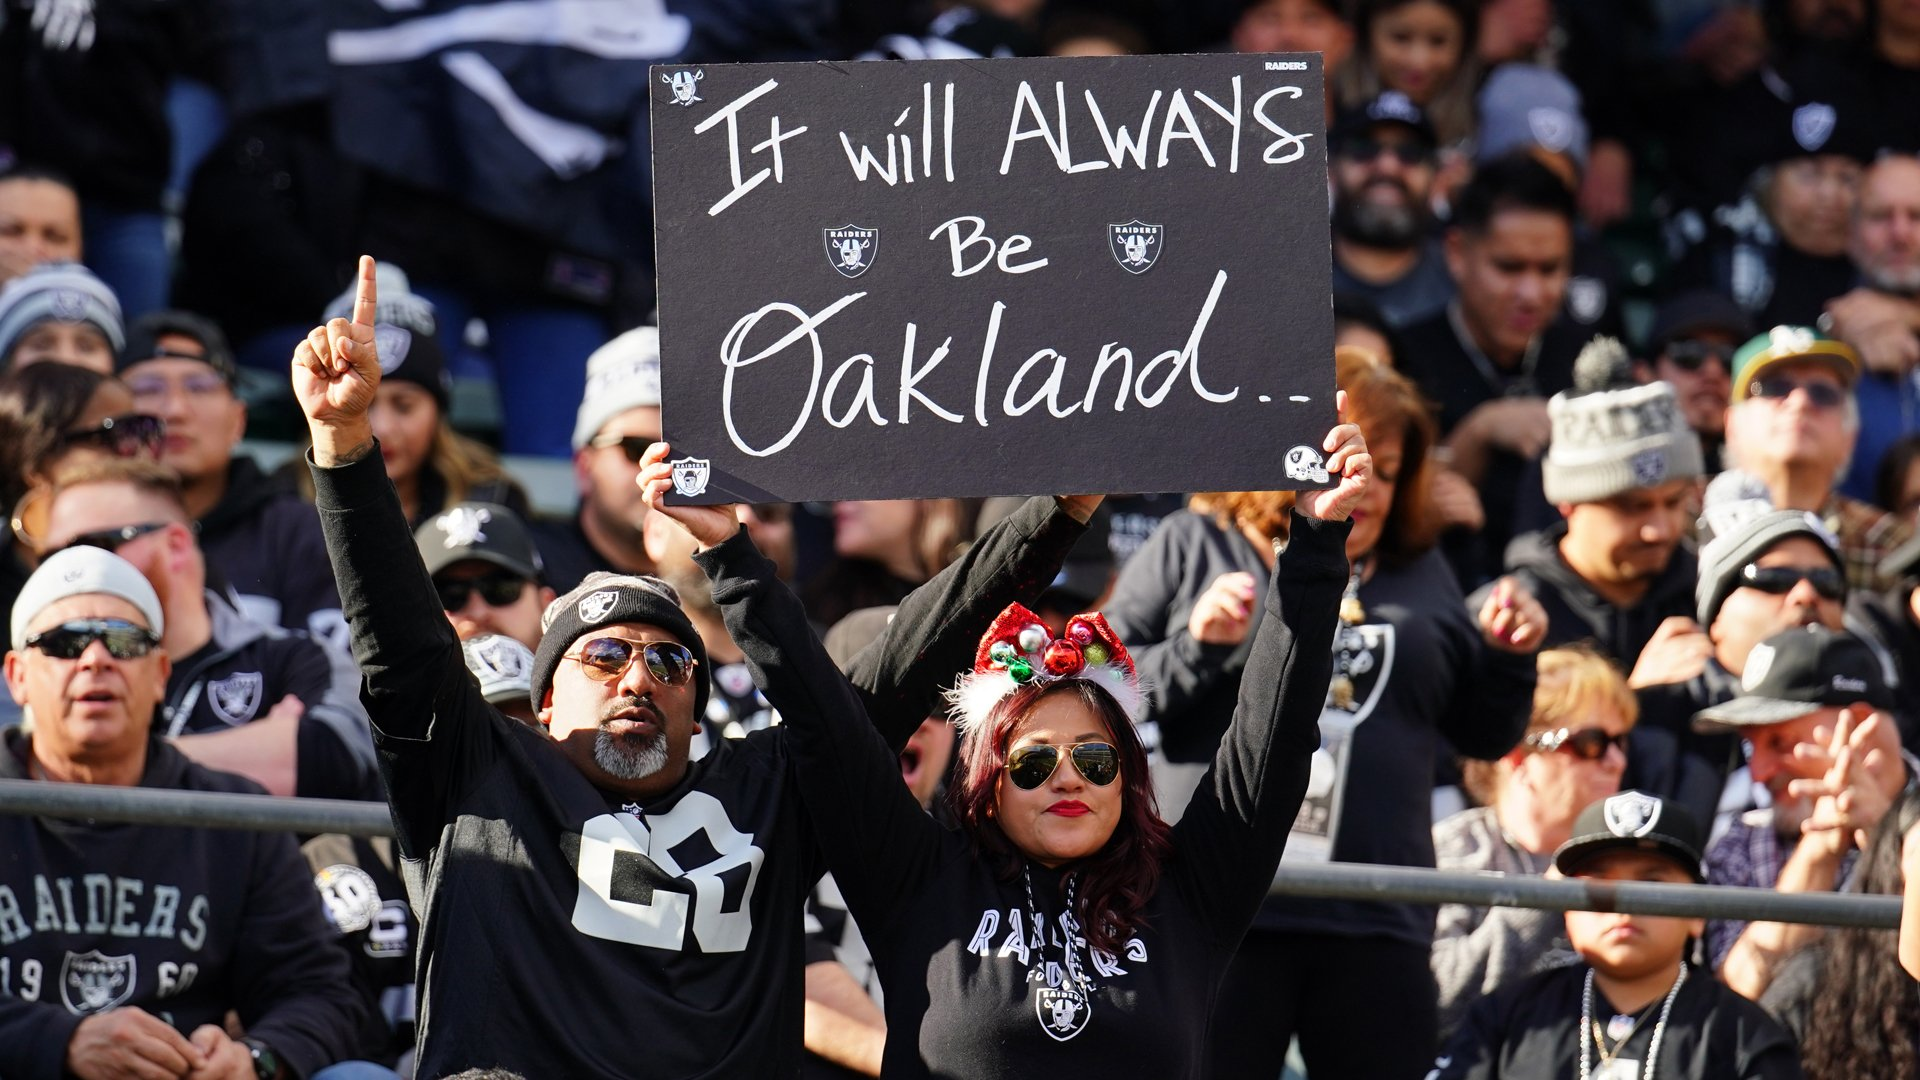 Fans in the stands hold signs during a game between the Oakland Raiders and the Jacksonville Jaguars in Oakland on Dec. 15, 2019. (Credit: Daniel Shirey / Getty Images)